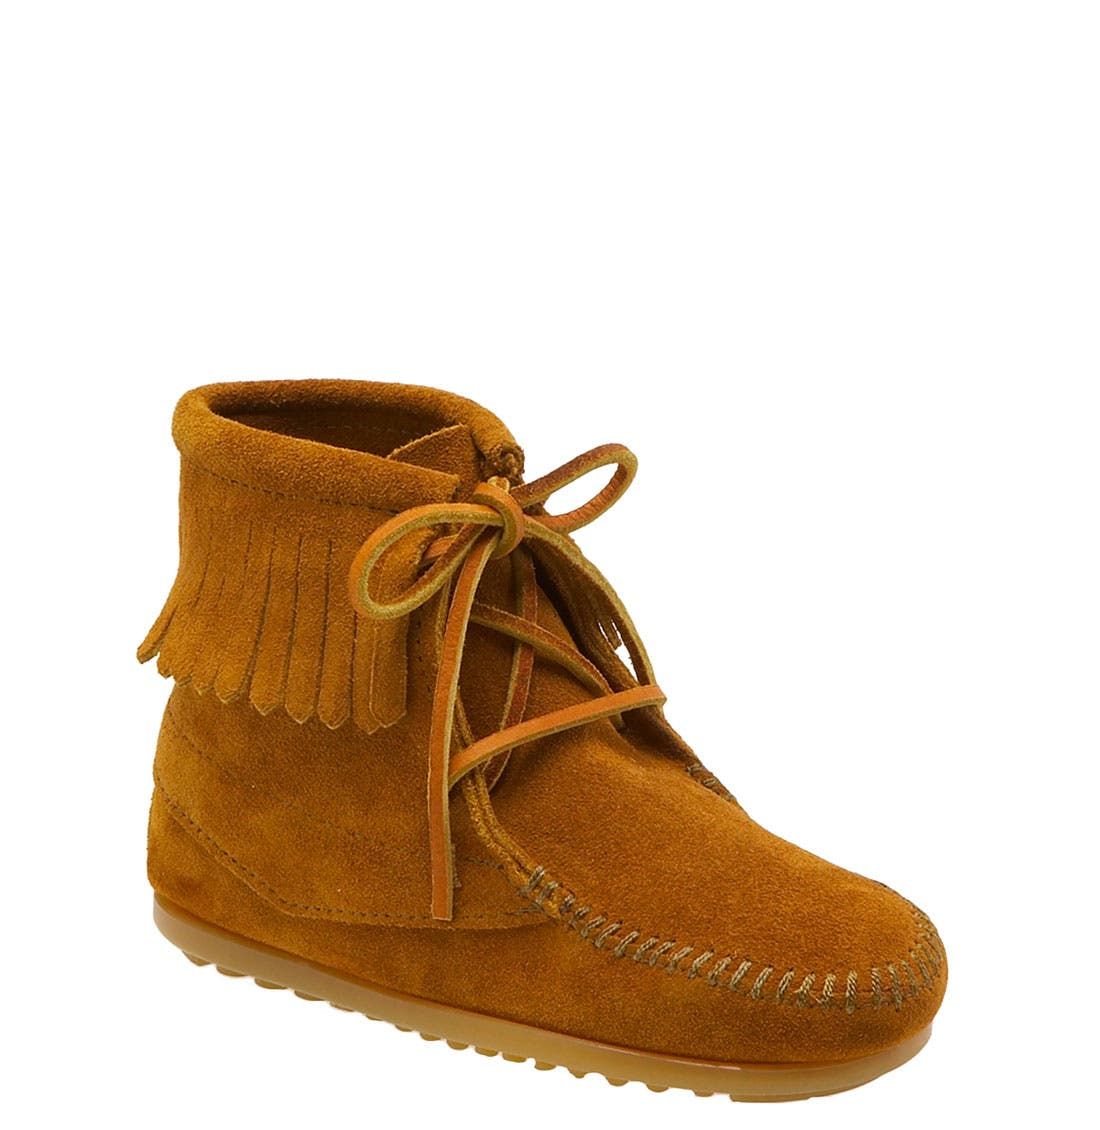 Minnetonka Lace-Up Boot (Walker, Toddler & Little Kid)